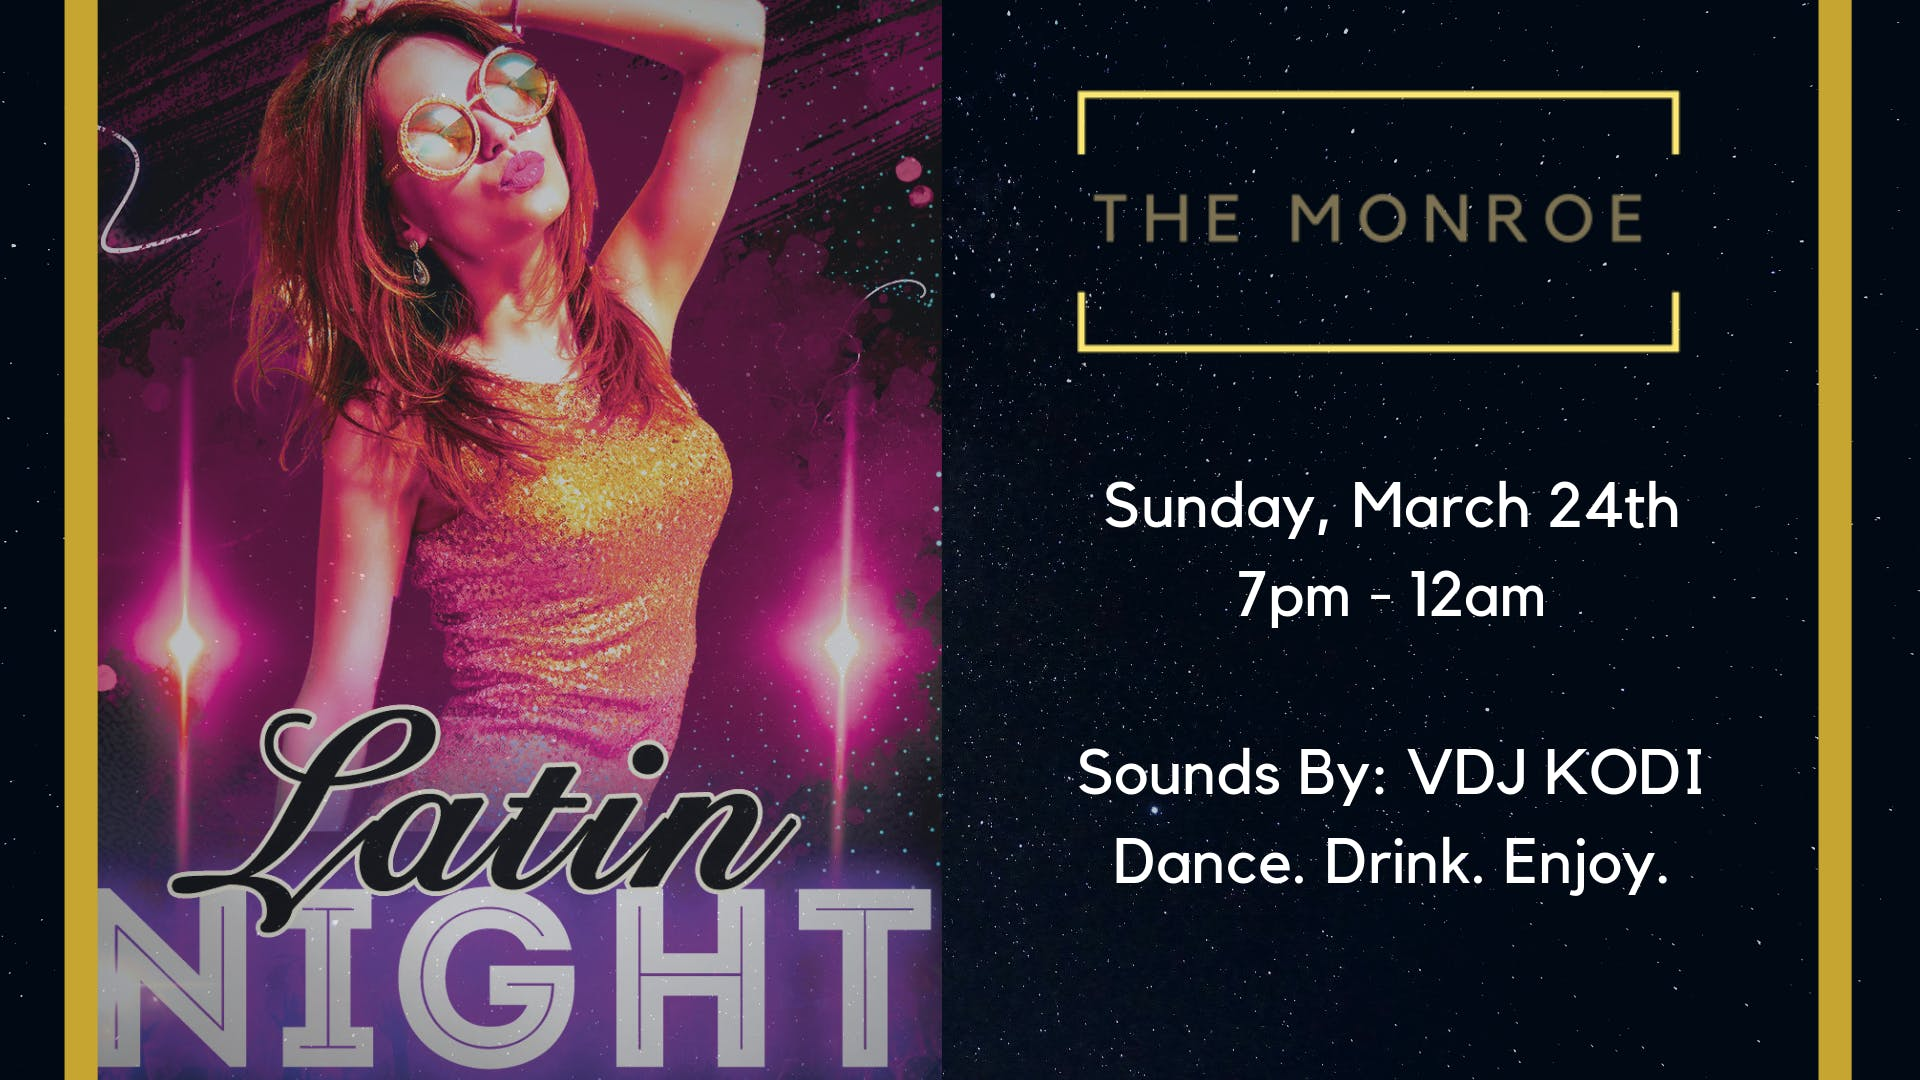 Sunday is Latin Night in Downtown Phoenix